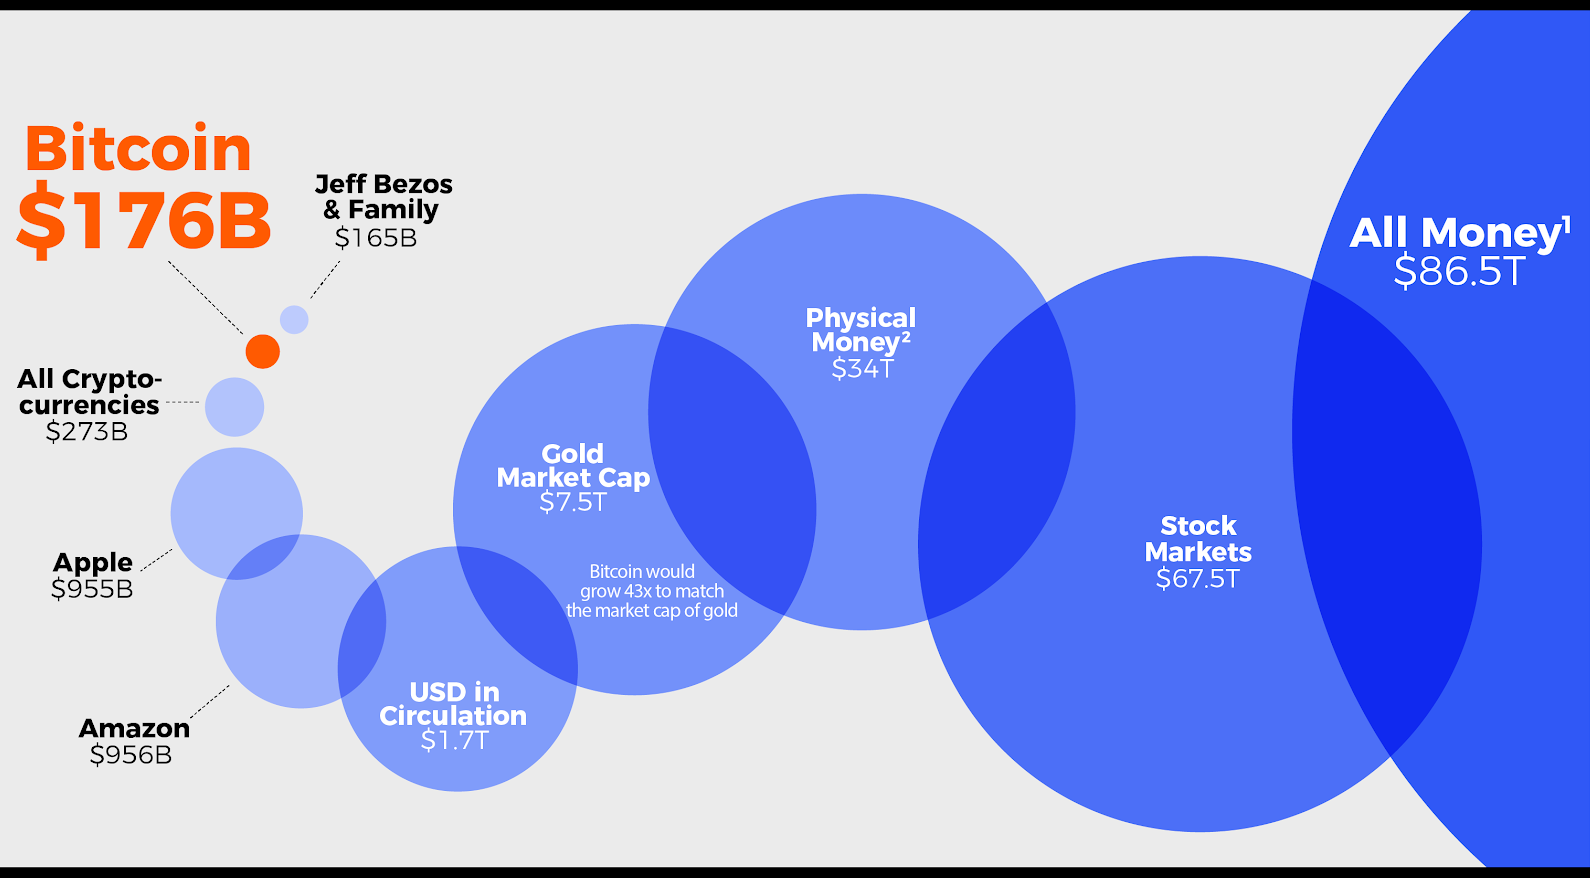 Cryptocurrency market cap in perspective. Source: BitcoinIRA